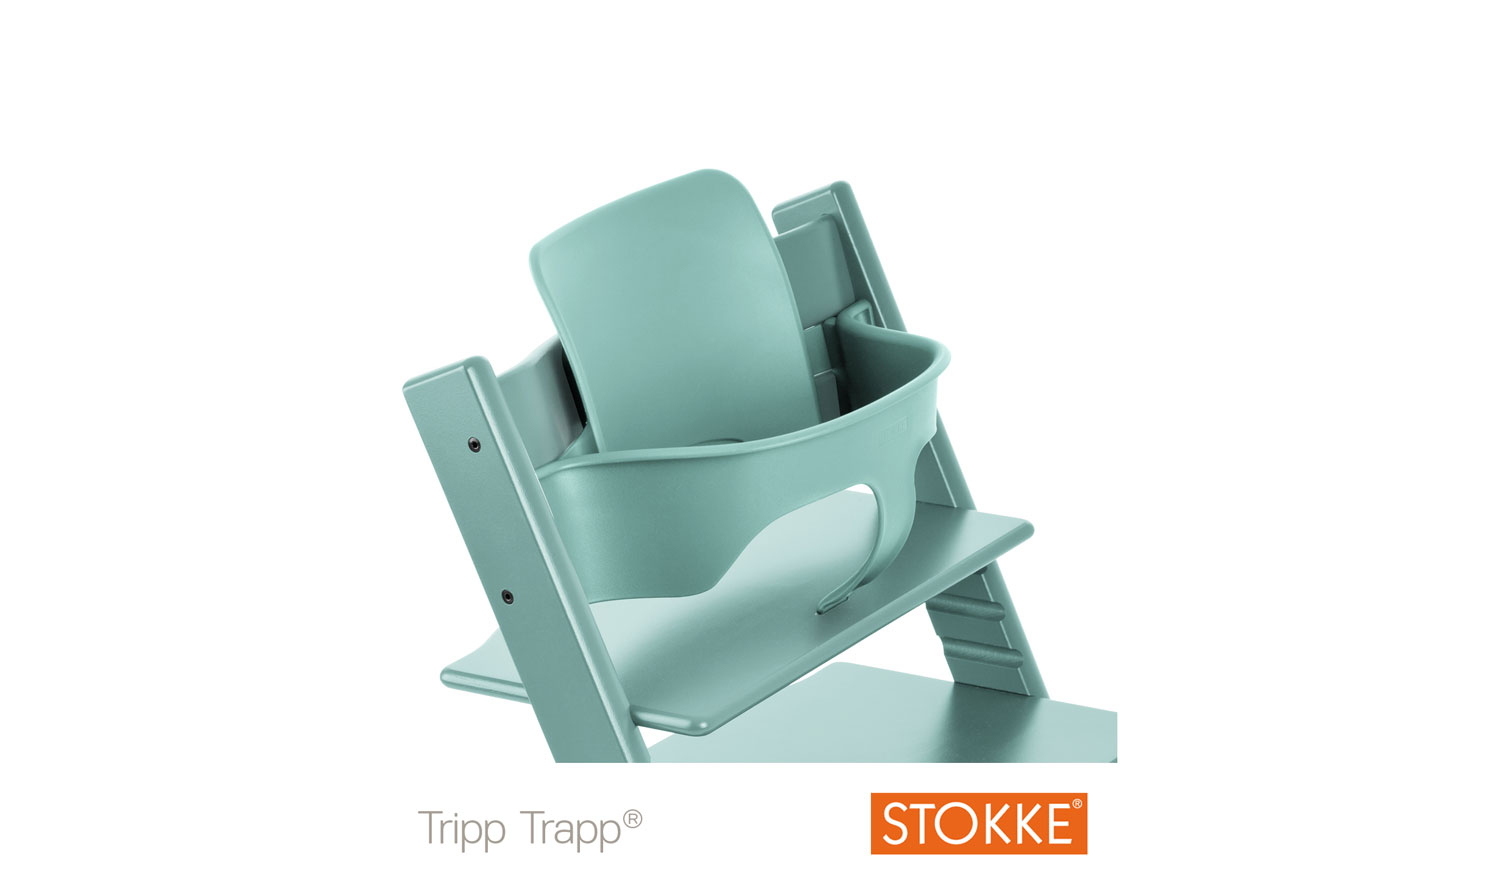 stokke tripp trapp baby set aqua blue free shipping. Black Bedroom Furniture Sets. Home Design Ideas